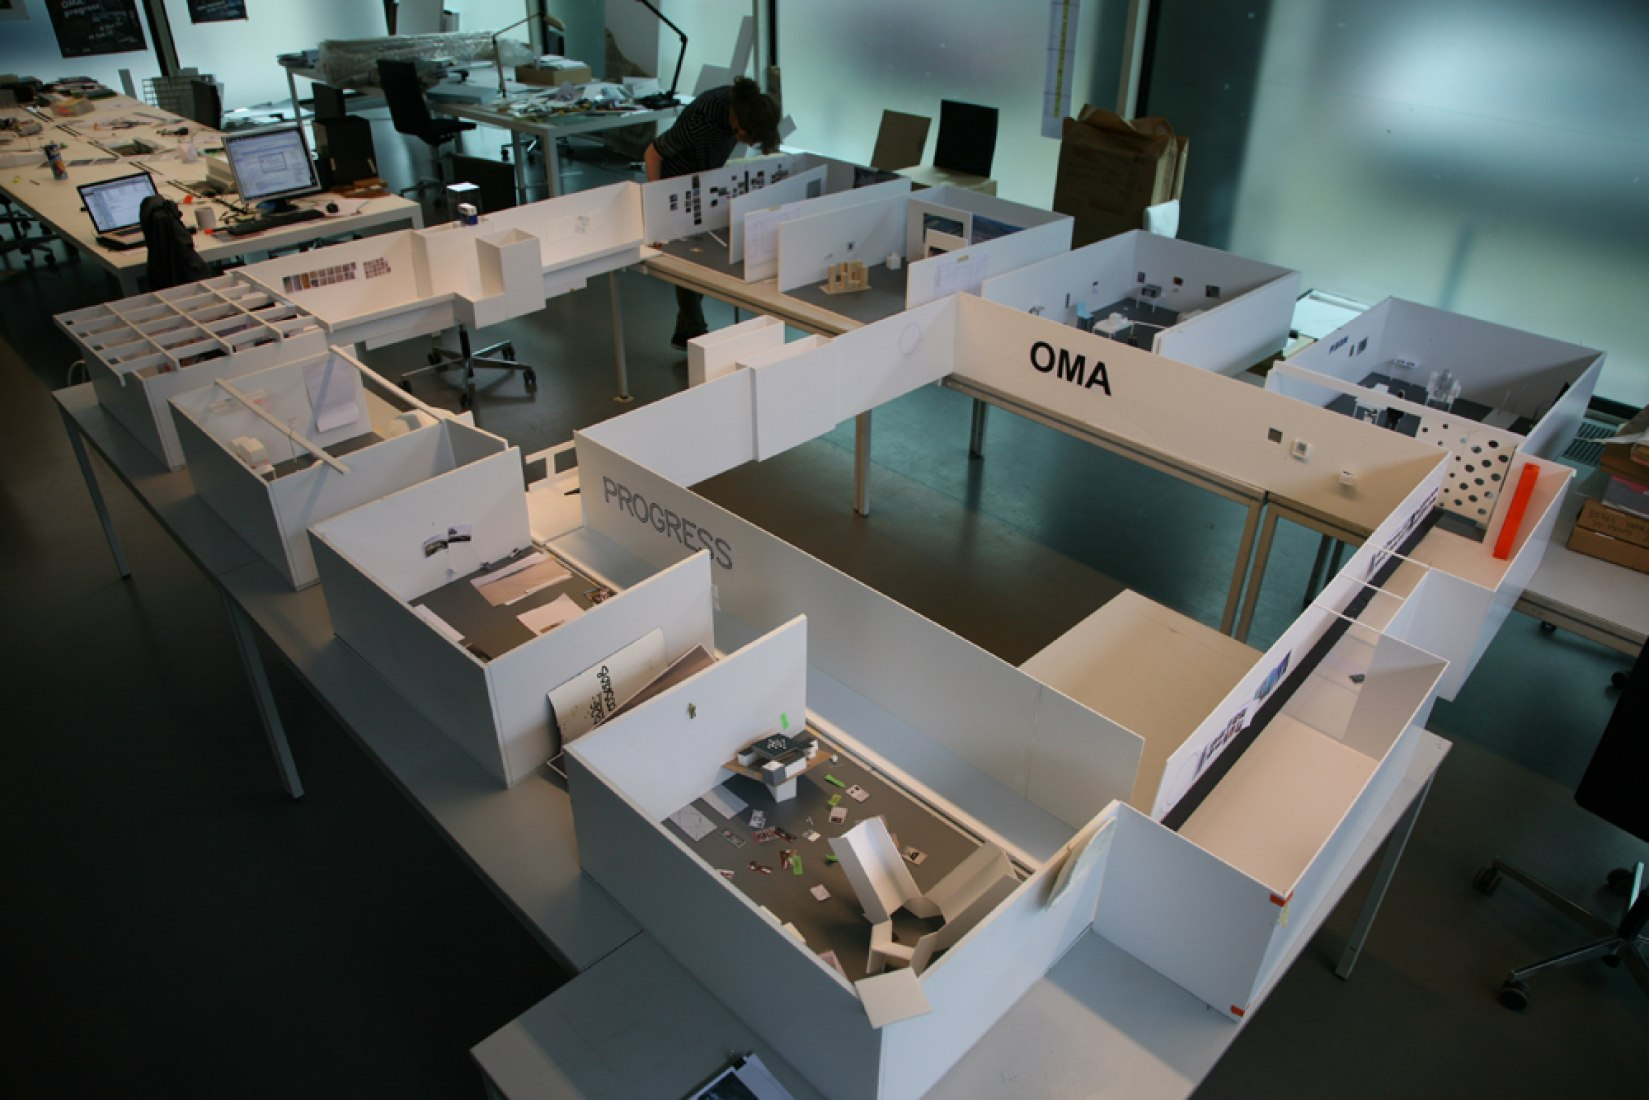 Model of Barbican Art gallery, OMA Rotterdam office. © Rotor © All rights reserved. Courtesy of OMA.